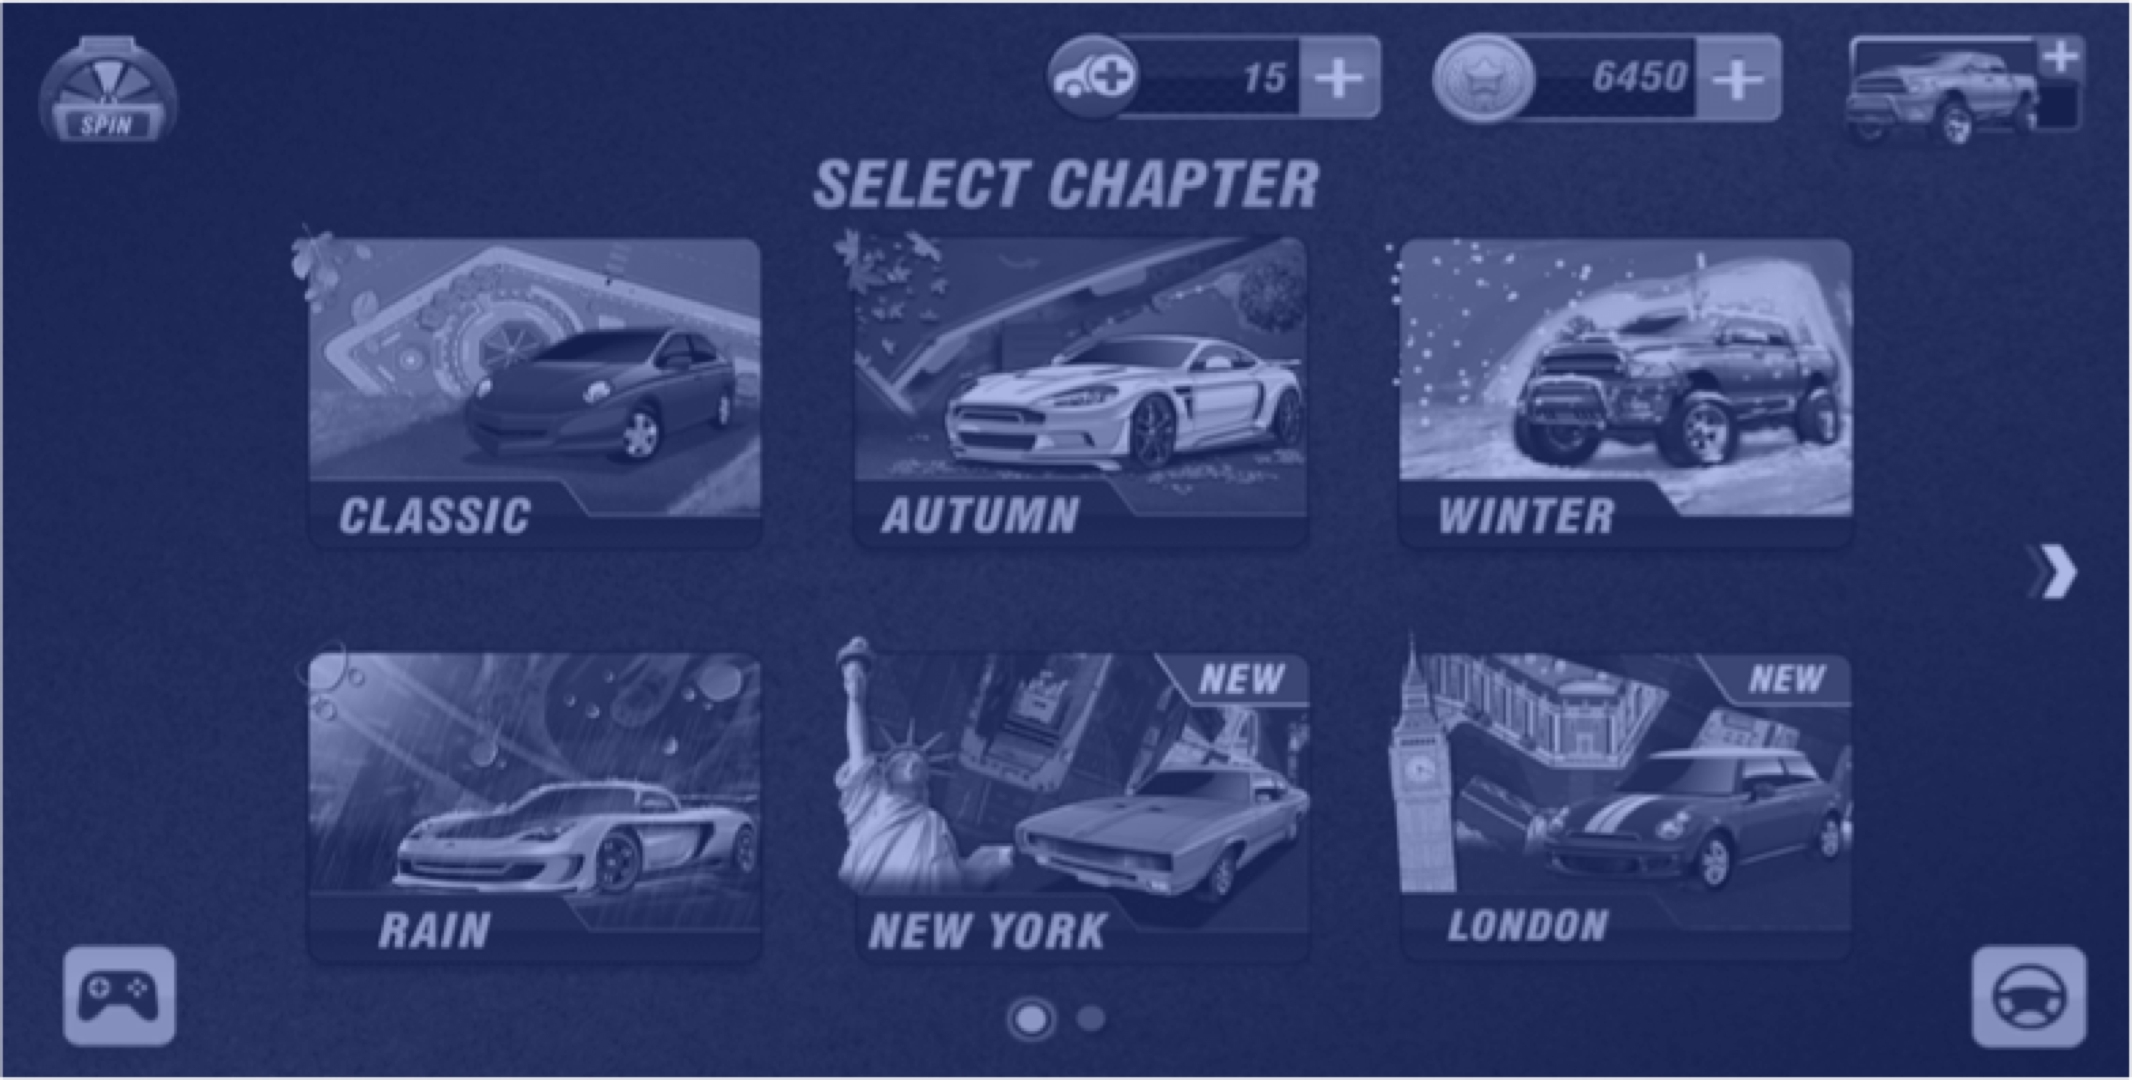 Selecting a chapter